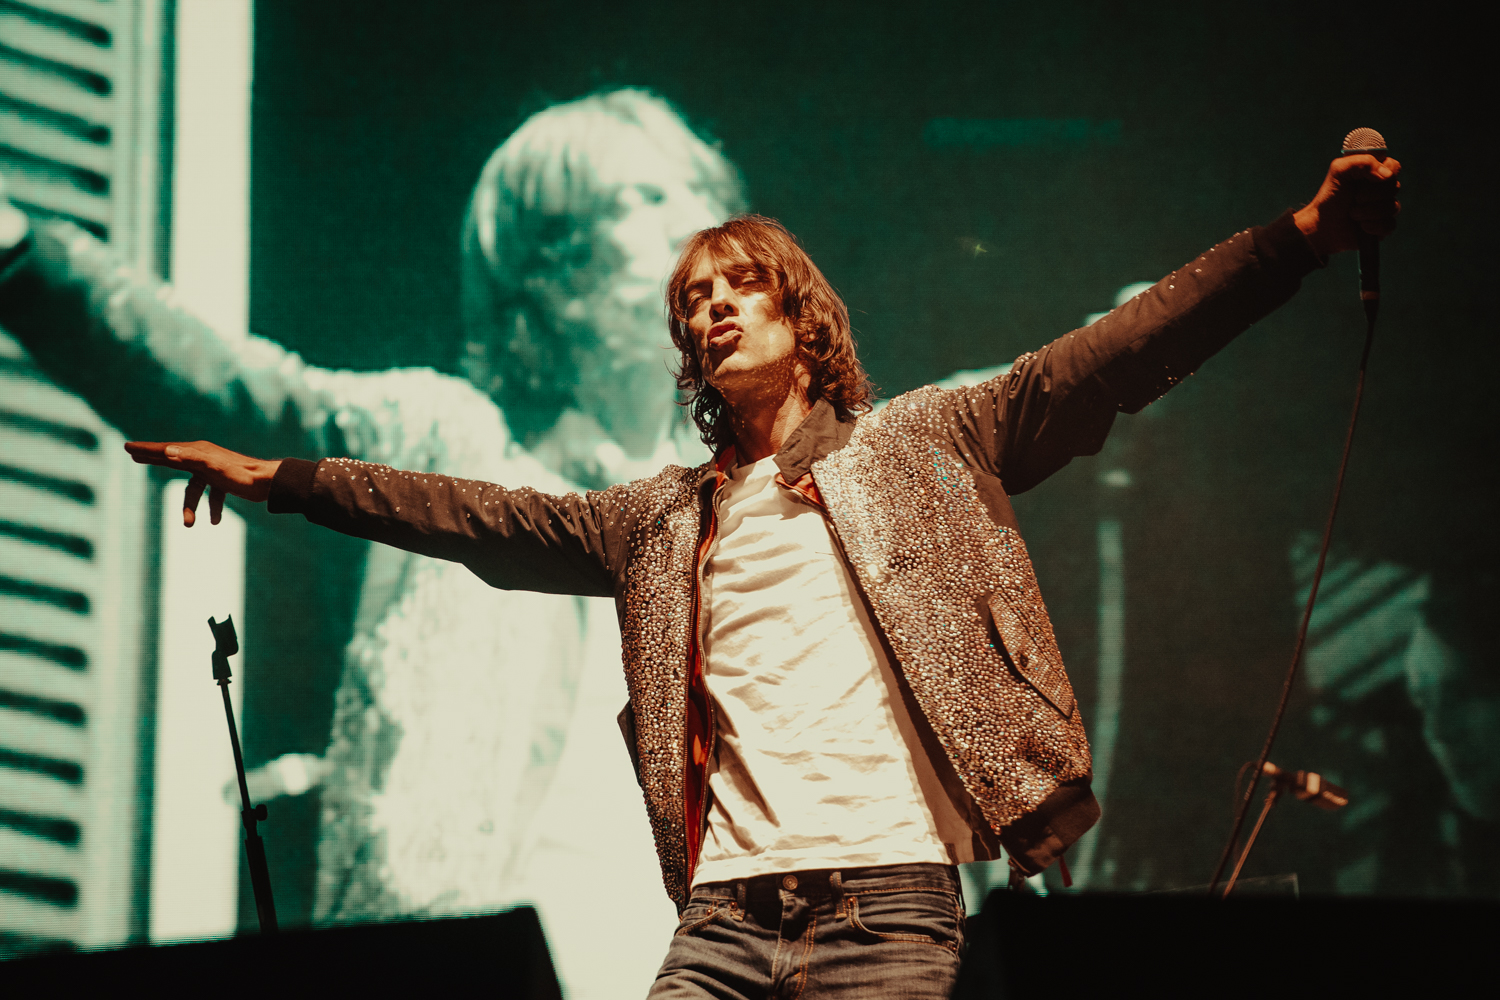 Richard Ashcroft's dazzling Olympia spectacle - in photos